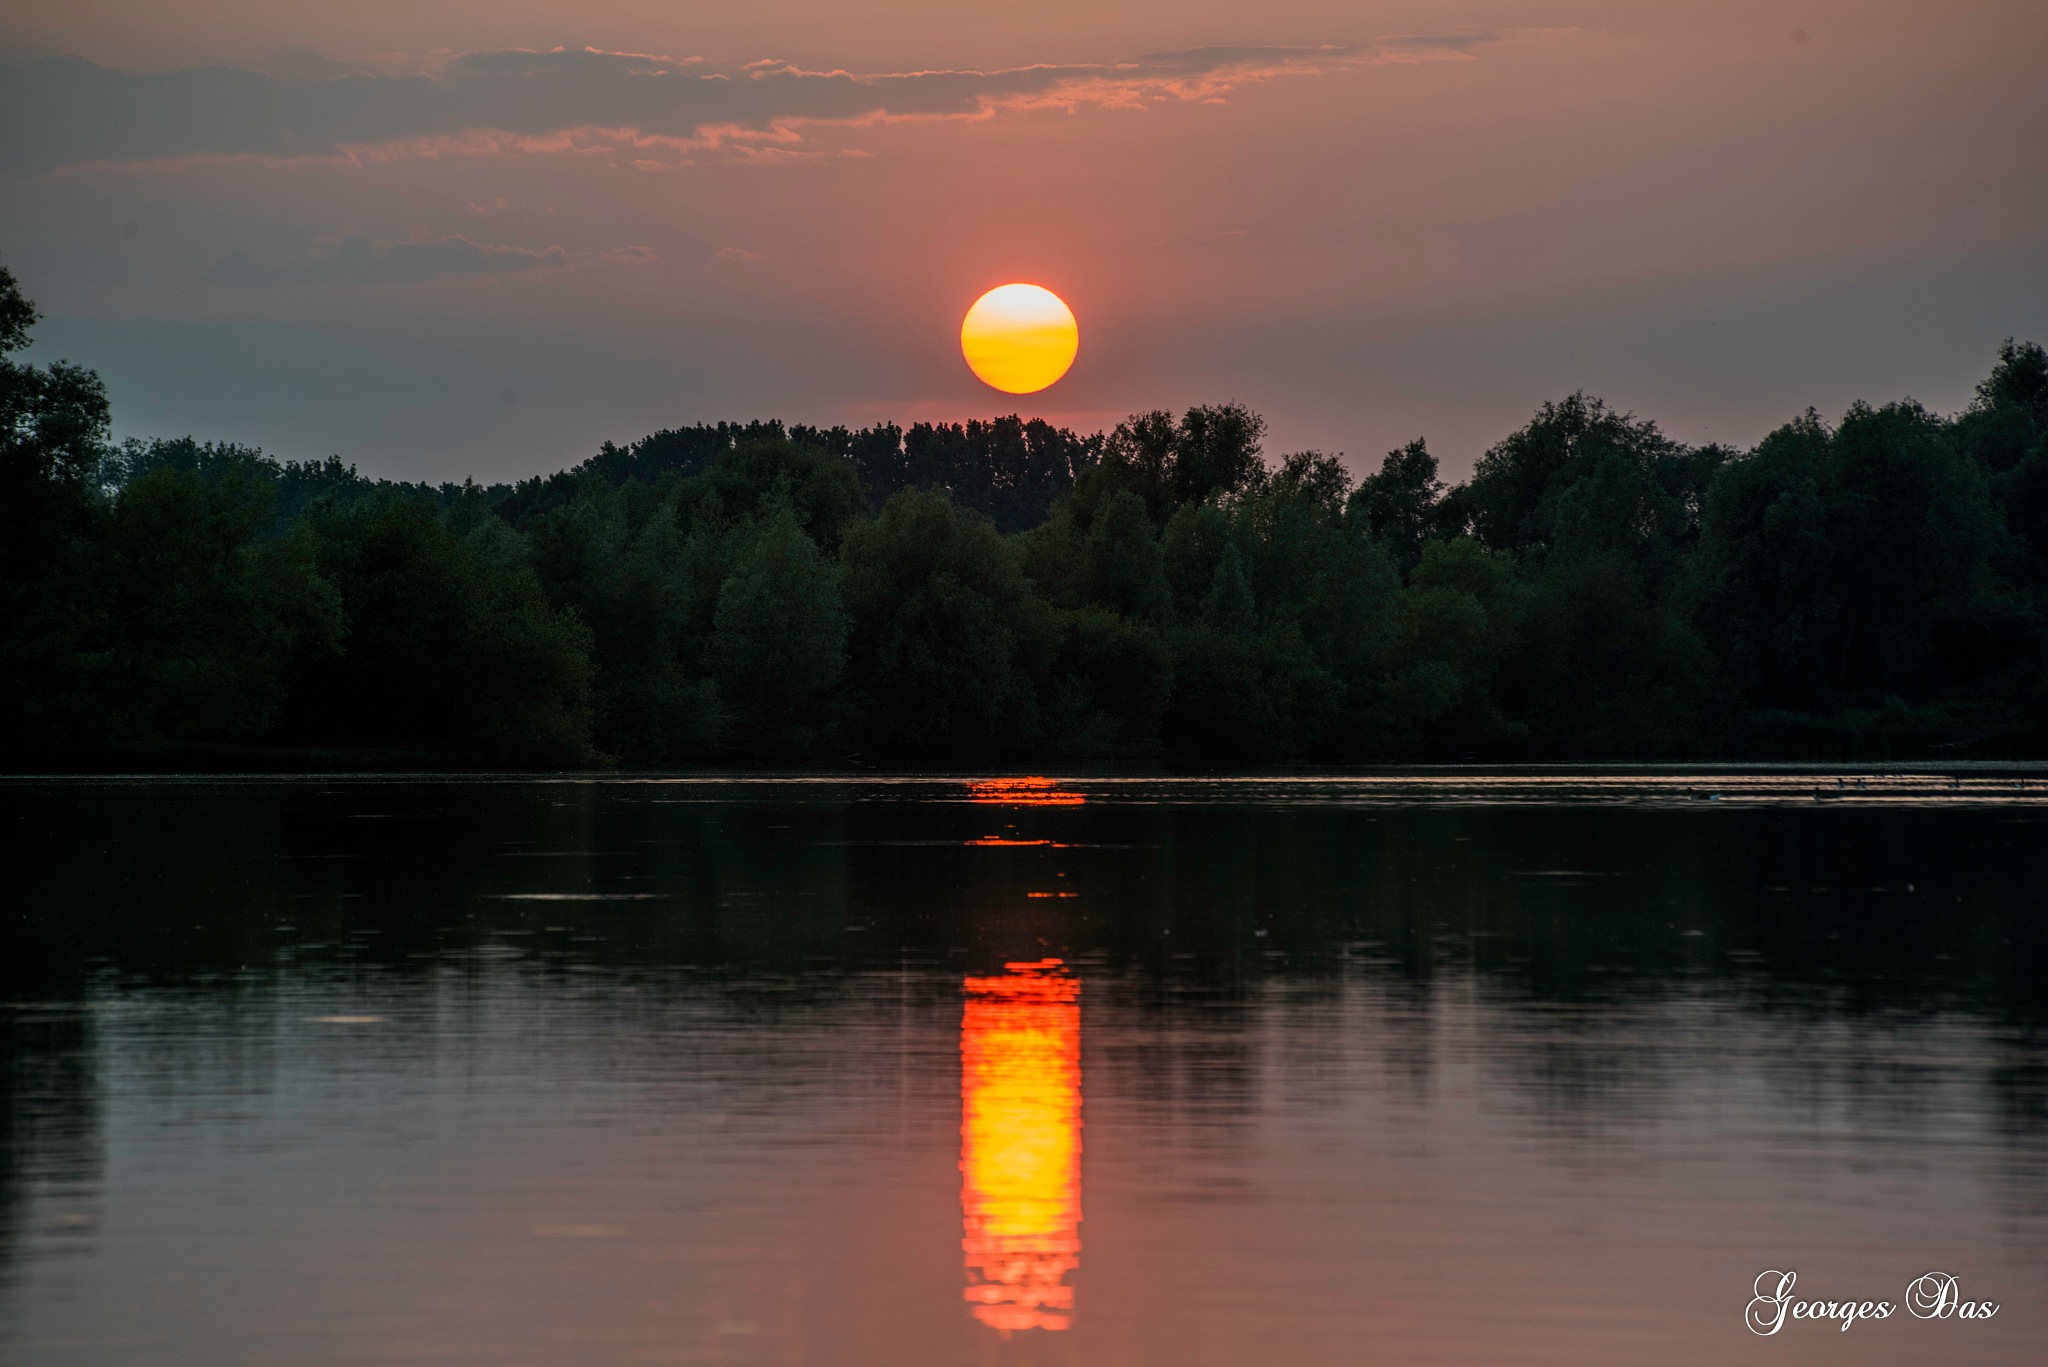 sunset by Georges Das